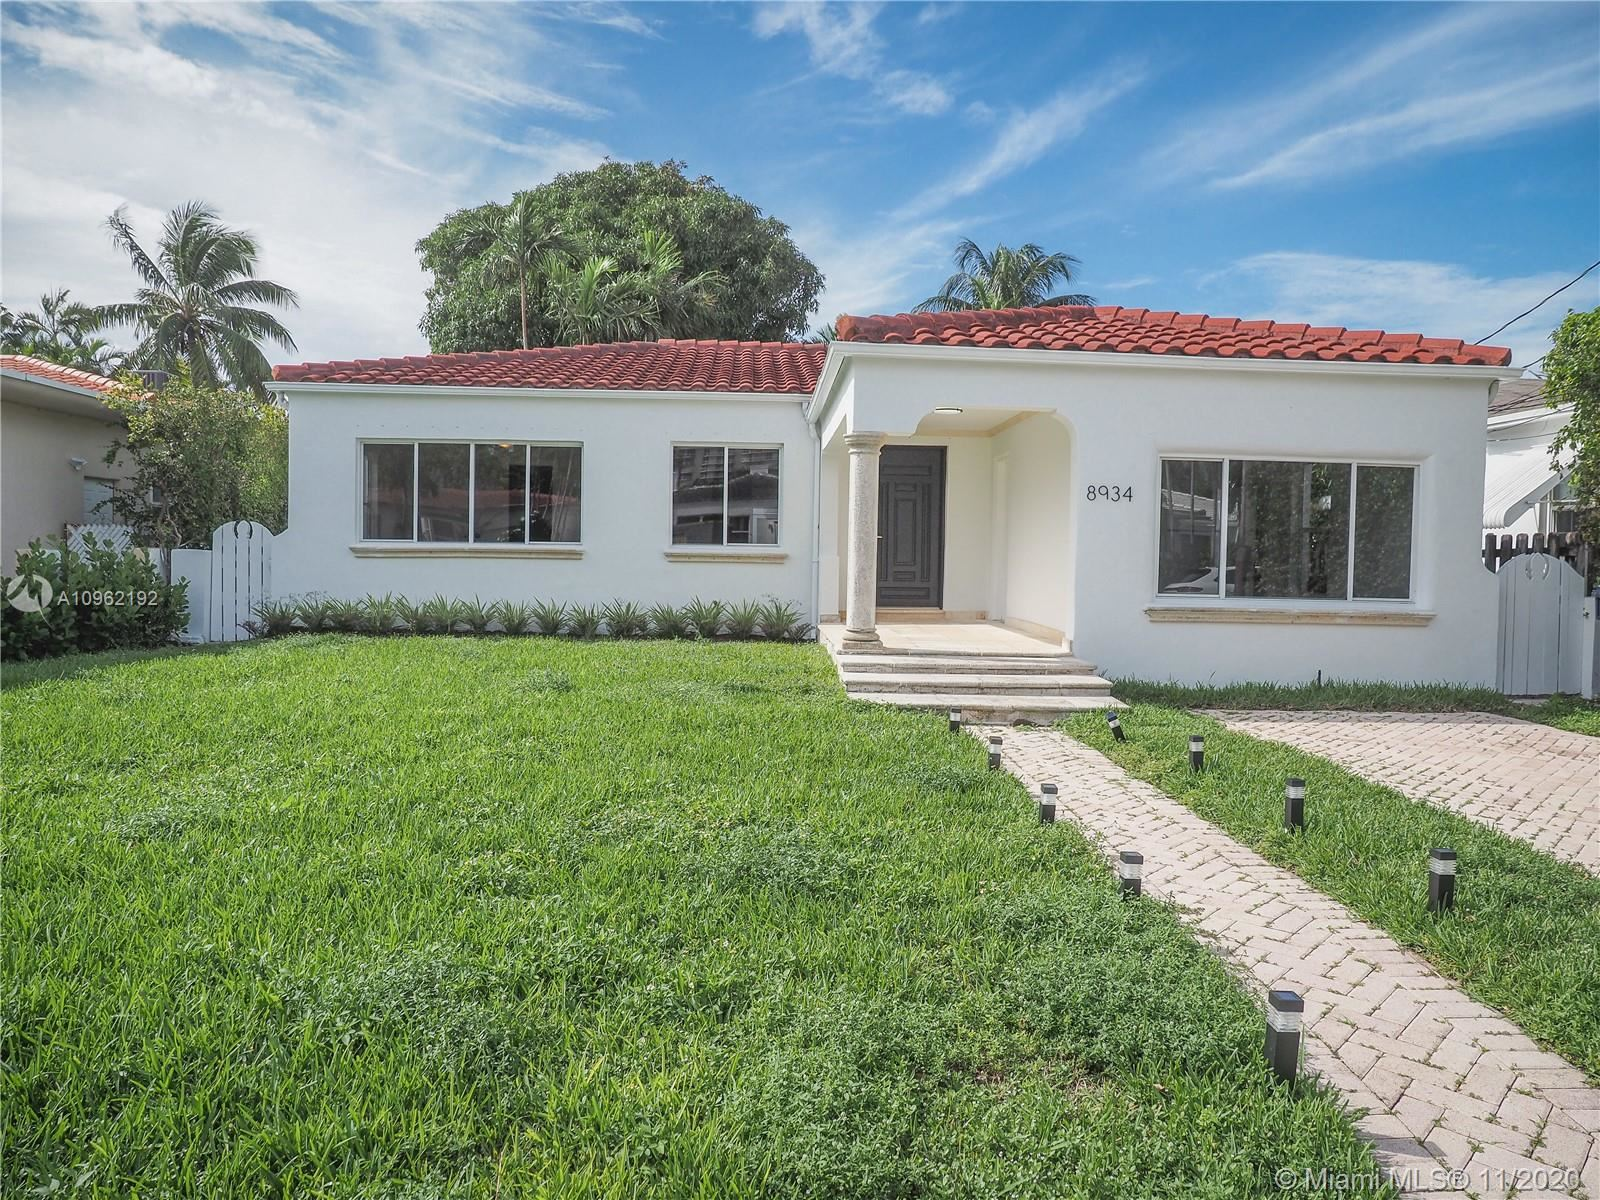 8934 Carlyle Ave, Surfside, FL 33154 - #: A10962192